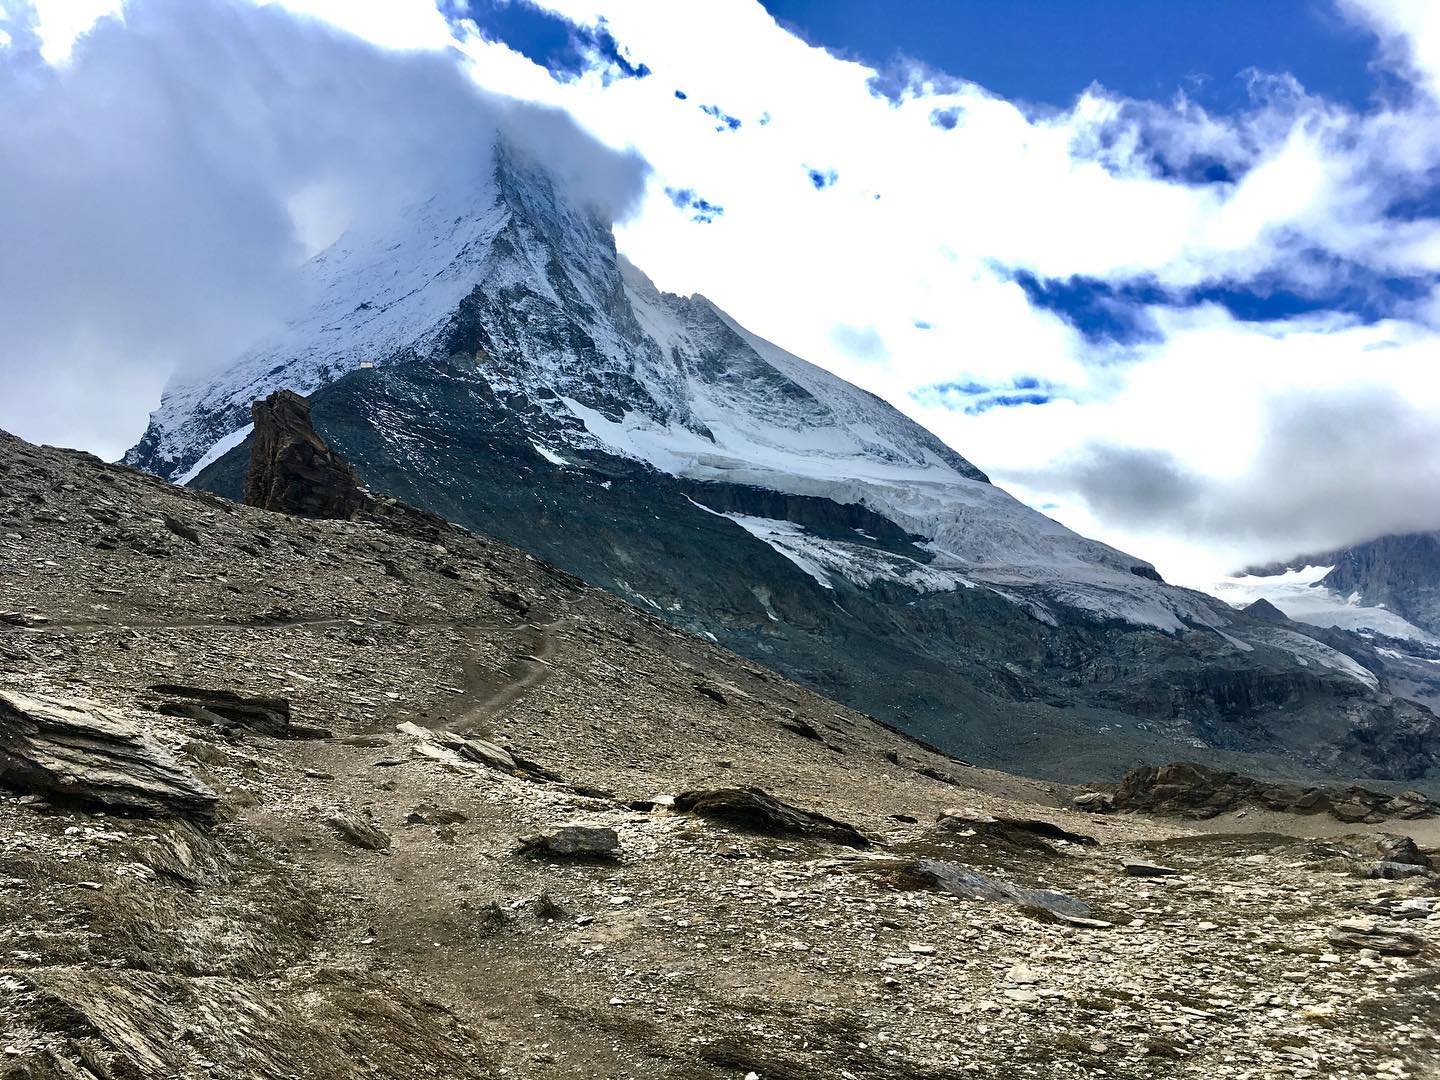 Trailrunning in Zermatt